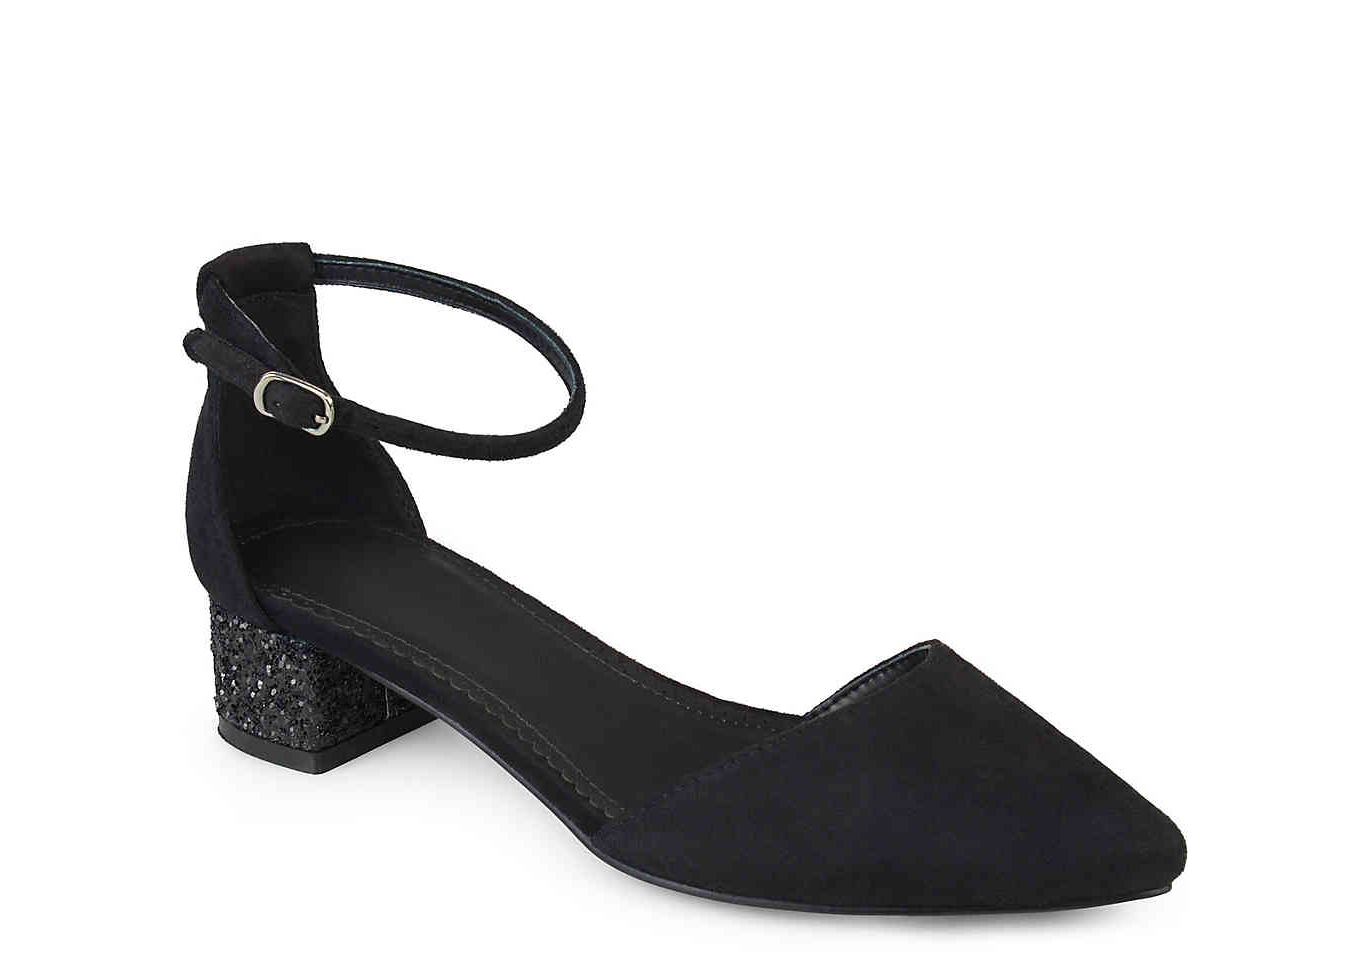 RX_1810_Holiday Shoes_Journee Collection Ankle-strap Pumps